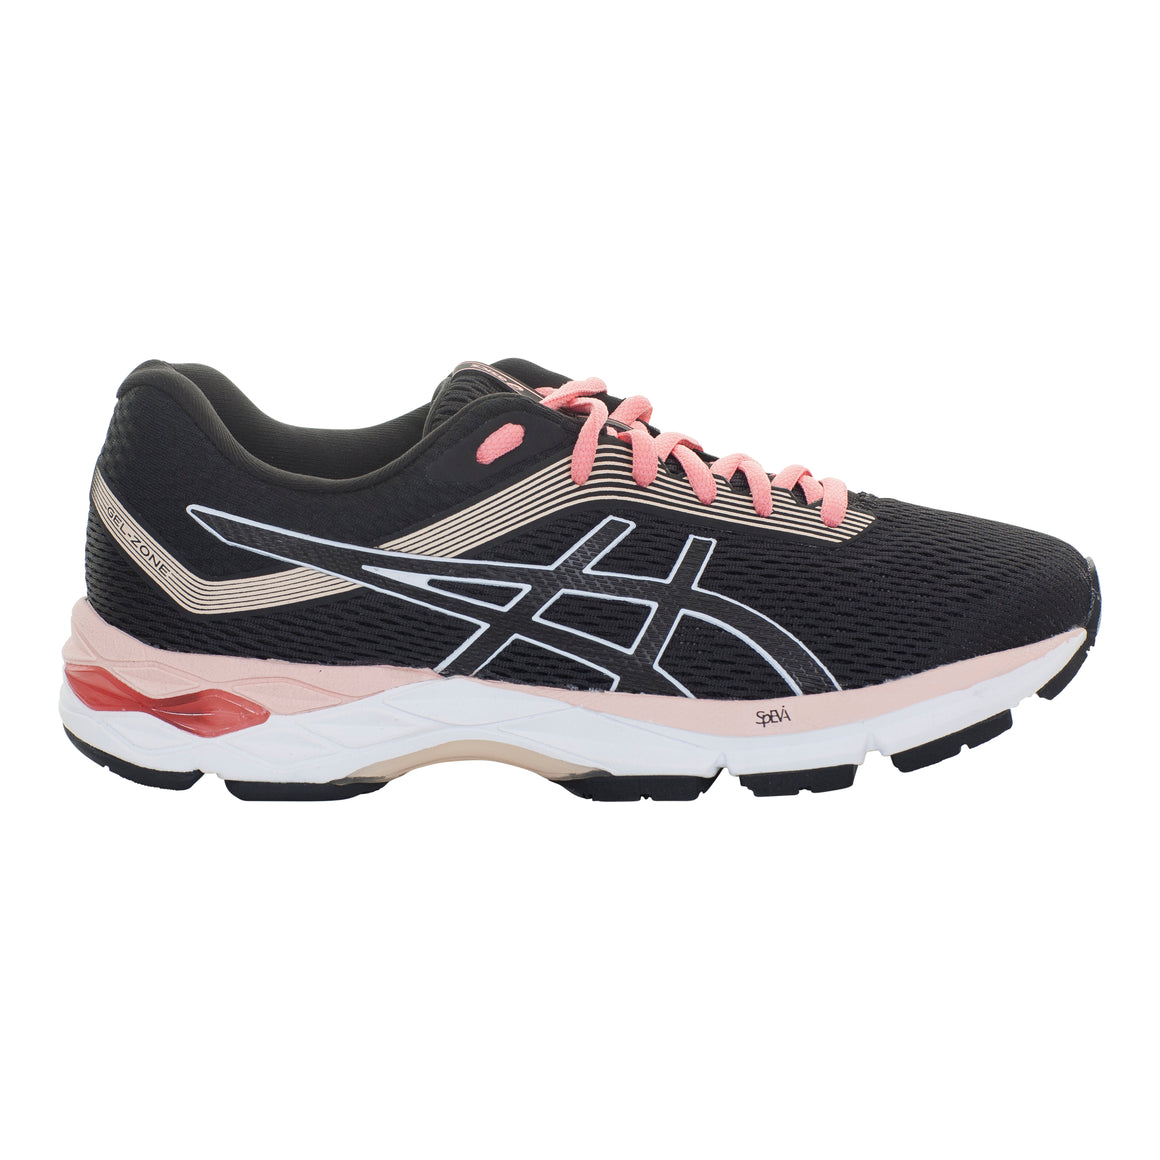 W Gel-Zone 7 Running Shoes for Women in Black/White